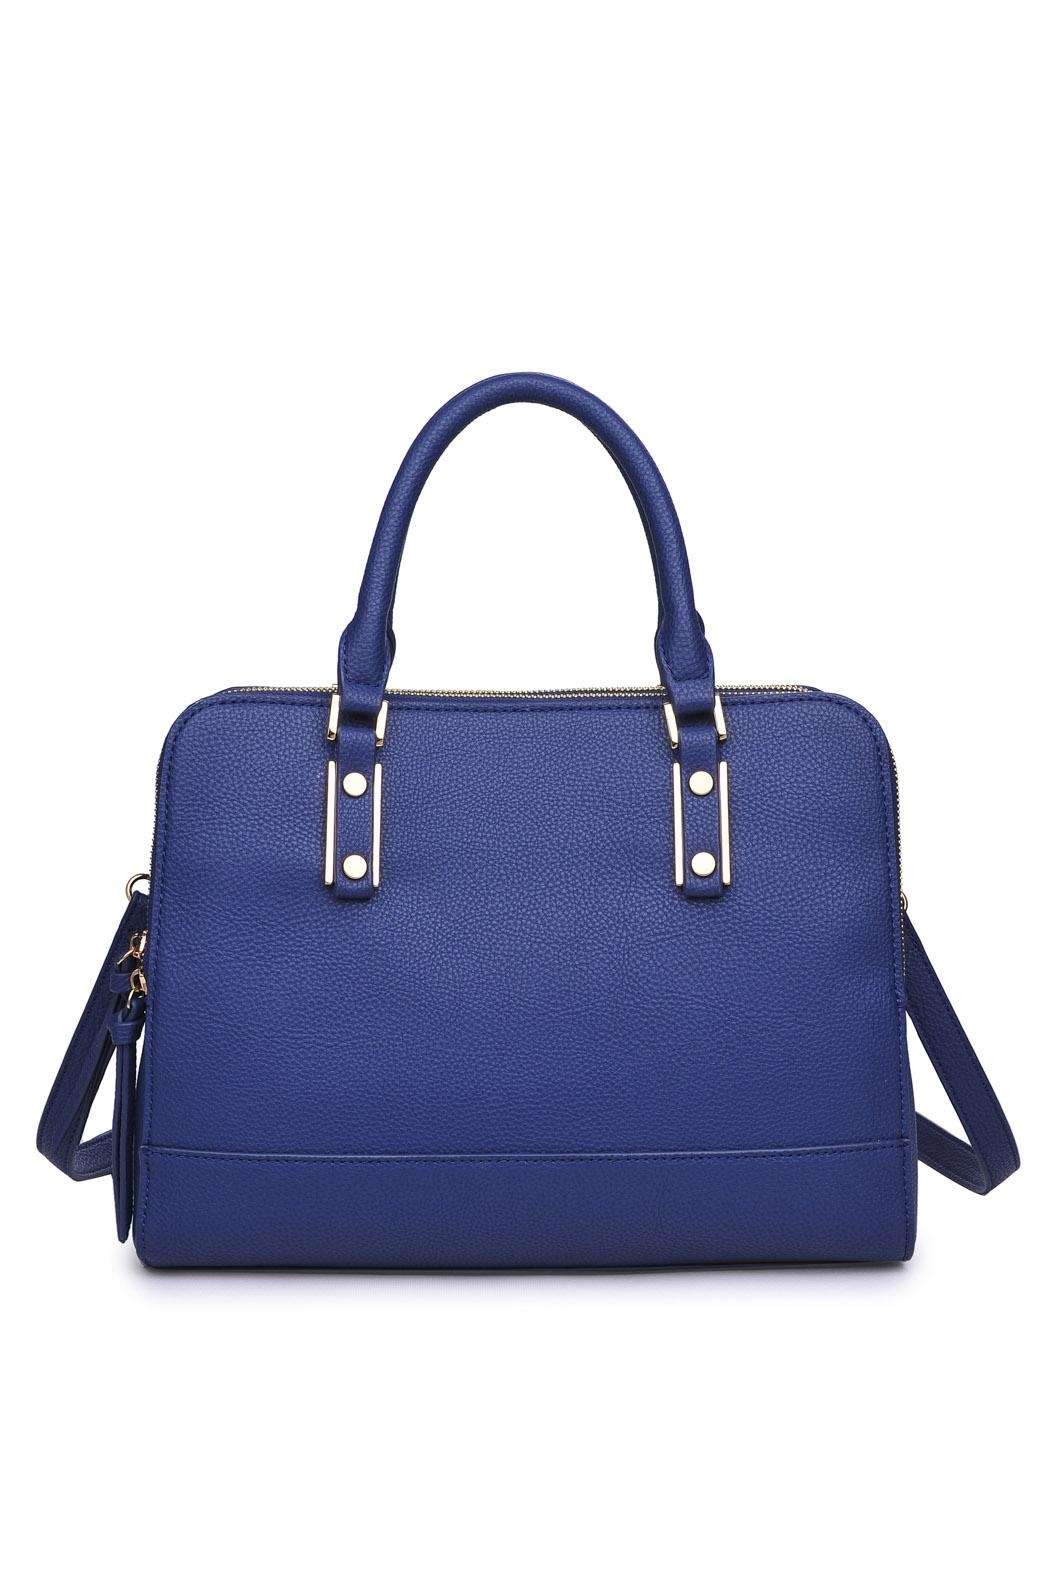 Urban Expressions Navy Satchel Bag - Main Image